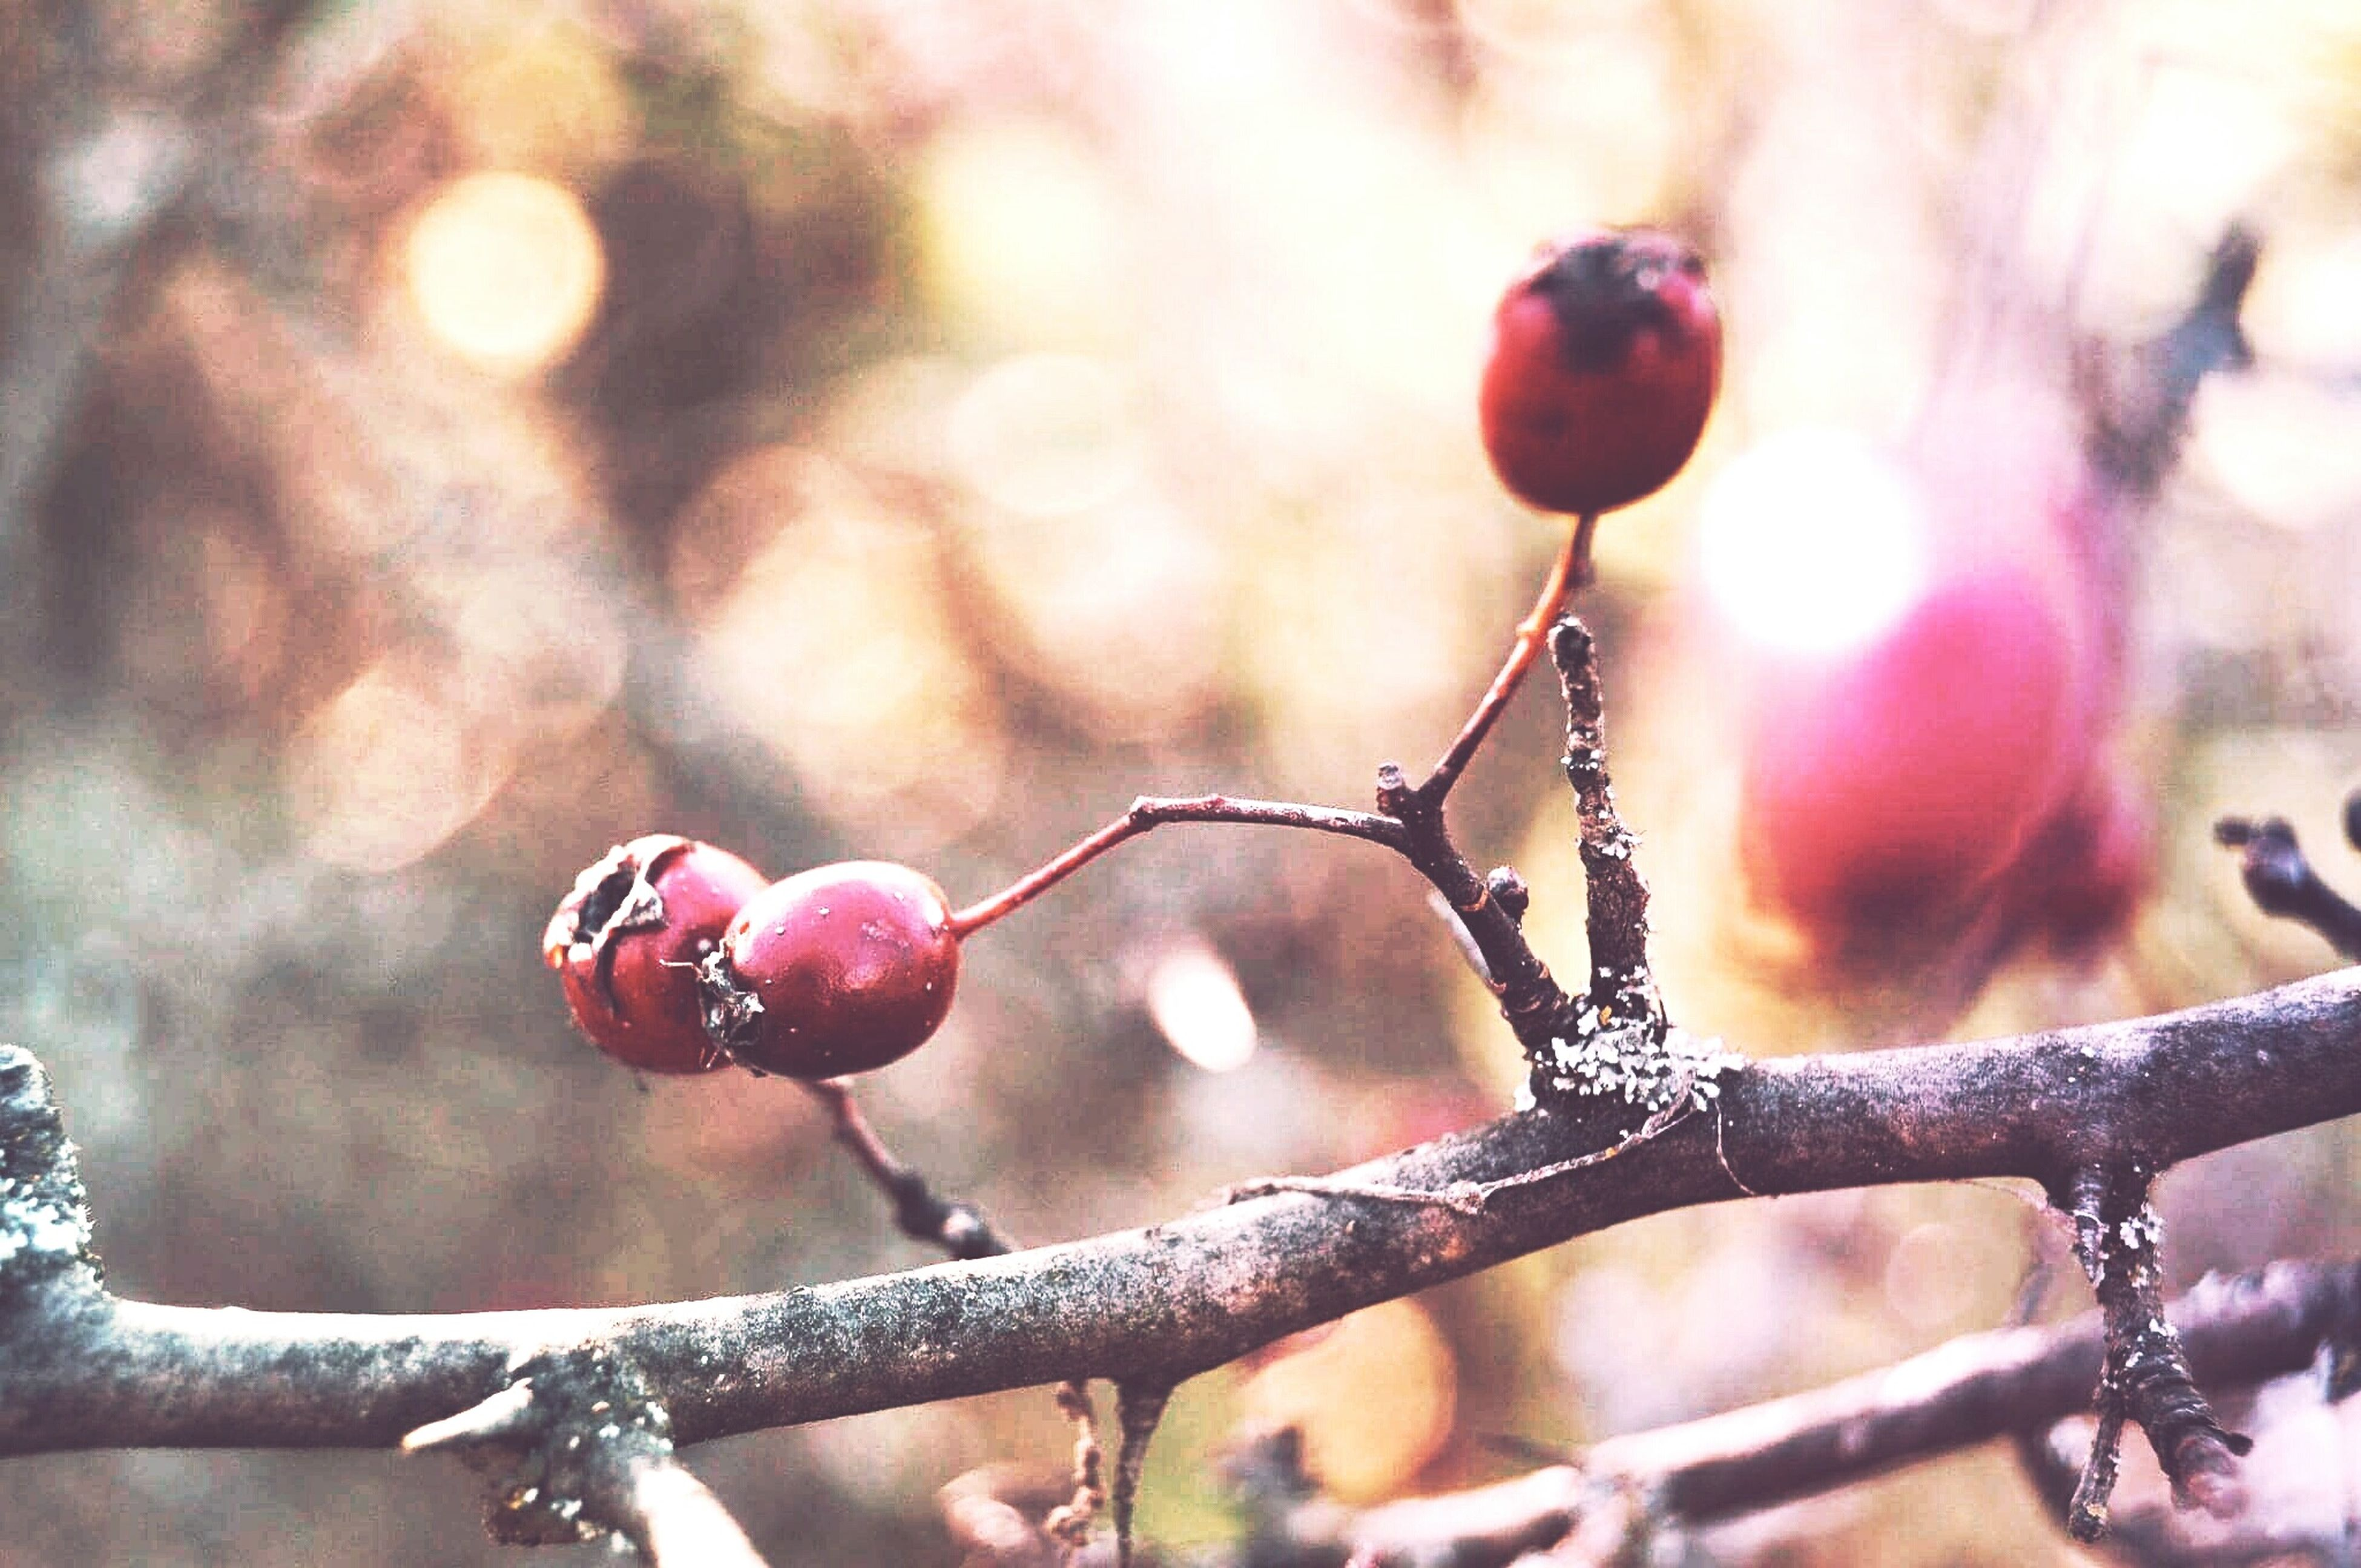 close-up, focus on foreground, rose hip, nature, fruit, freshness, red, food and drink, plant, outdoors, no people, twig, tree, day, beauty in nature, healthy eating